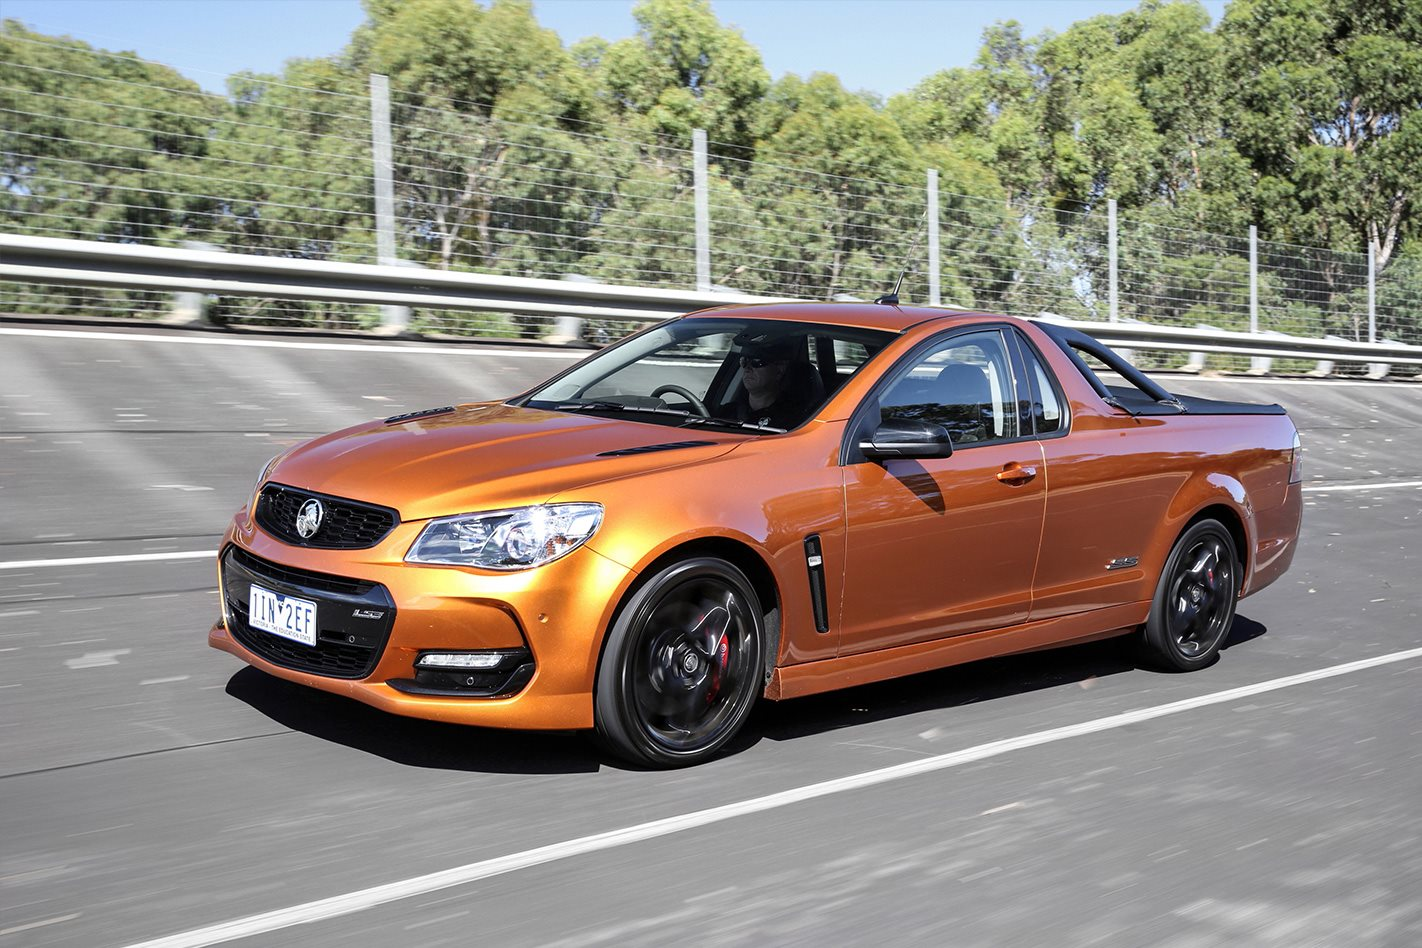 Image of the last Holden Ute ever produced in Australia